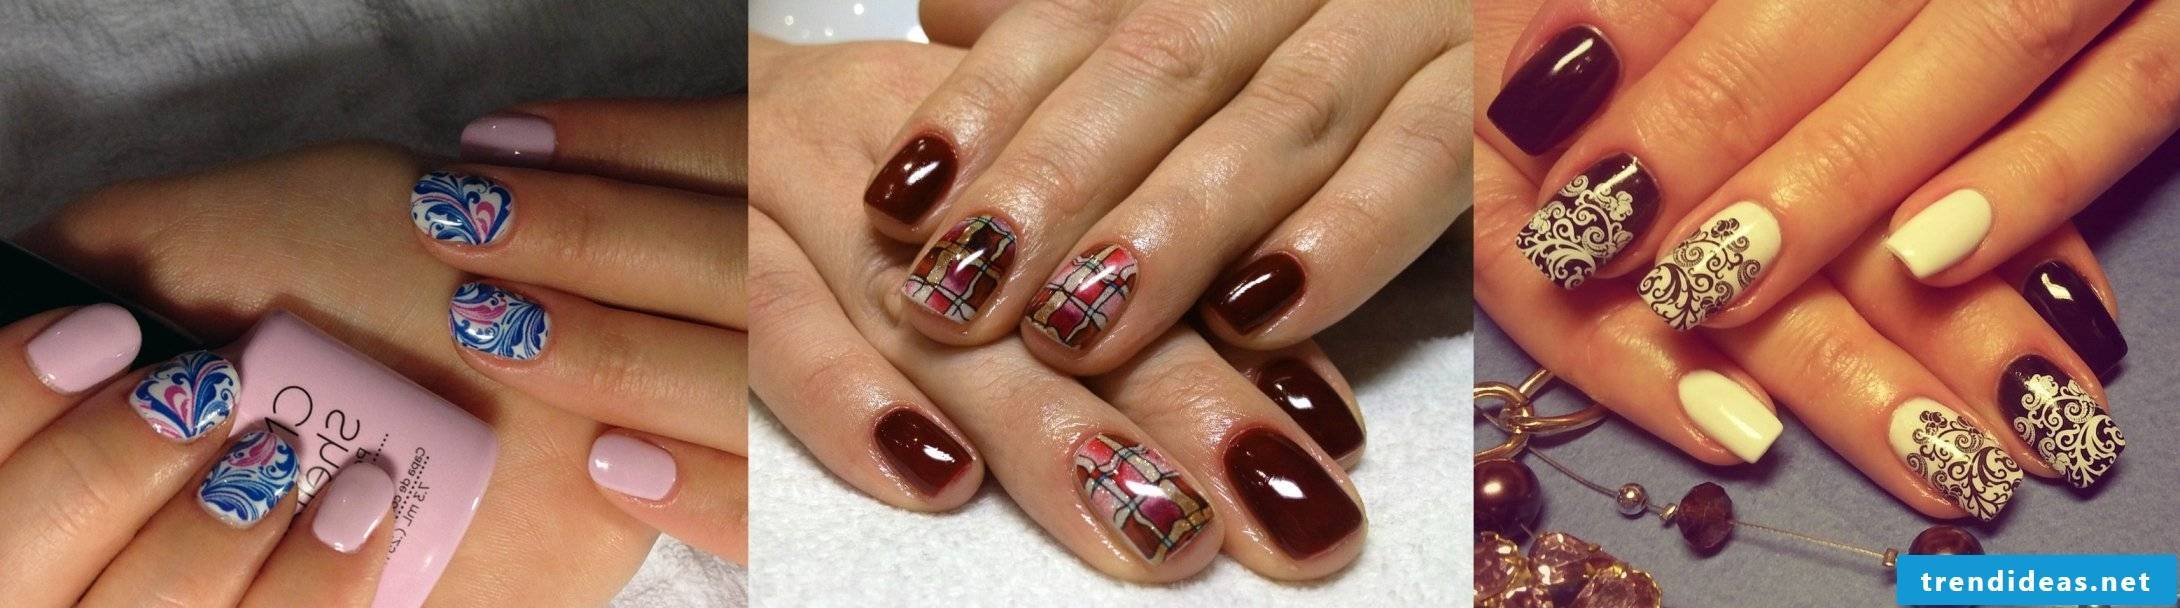 Great nail designs for different occasions